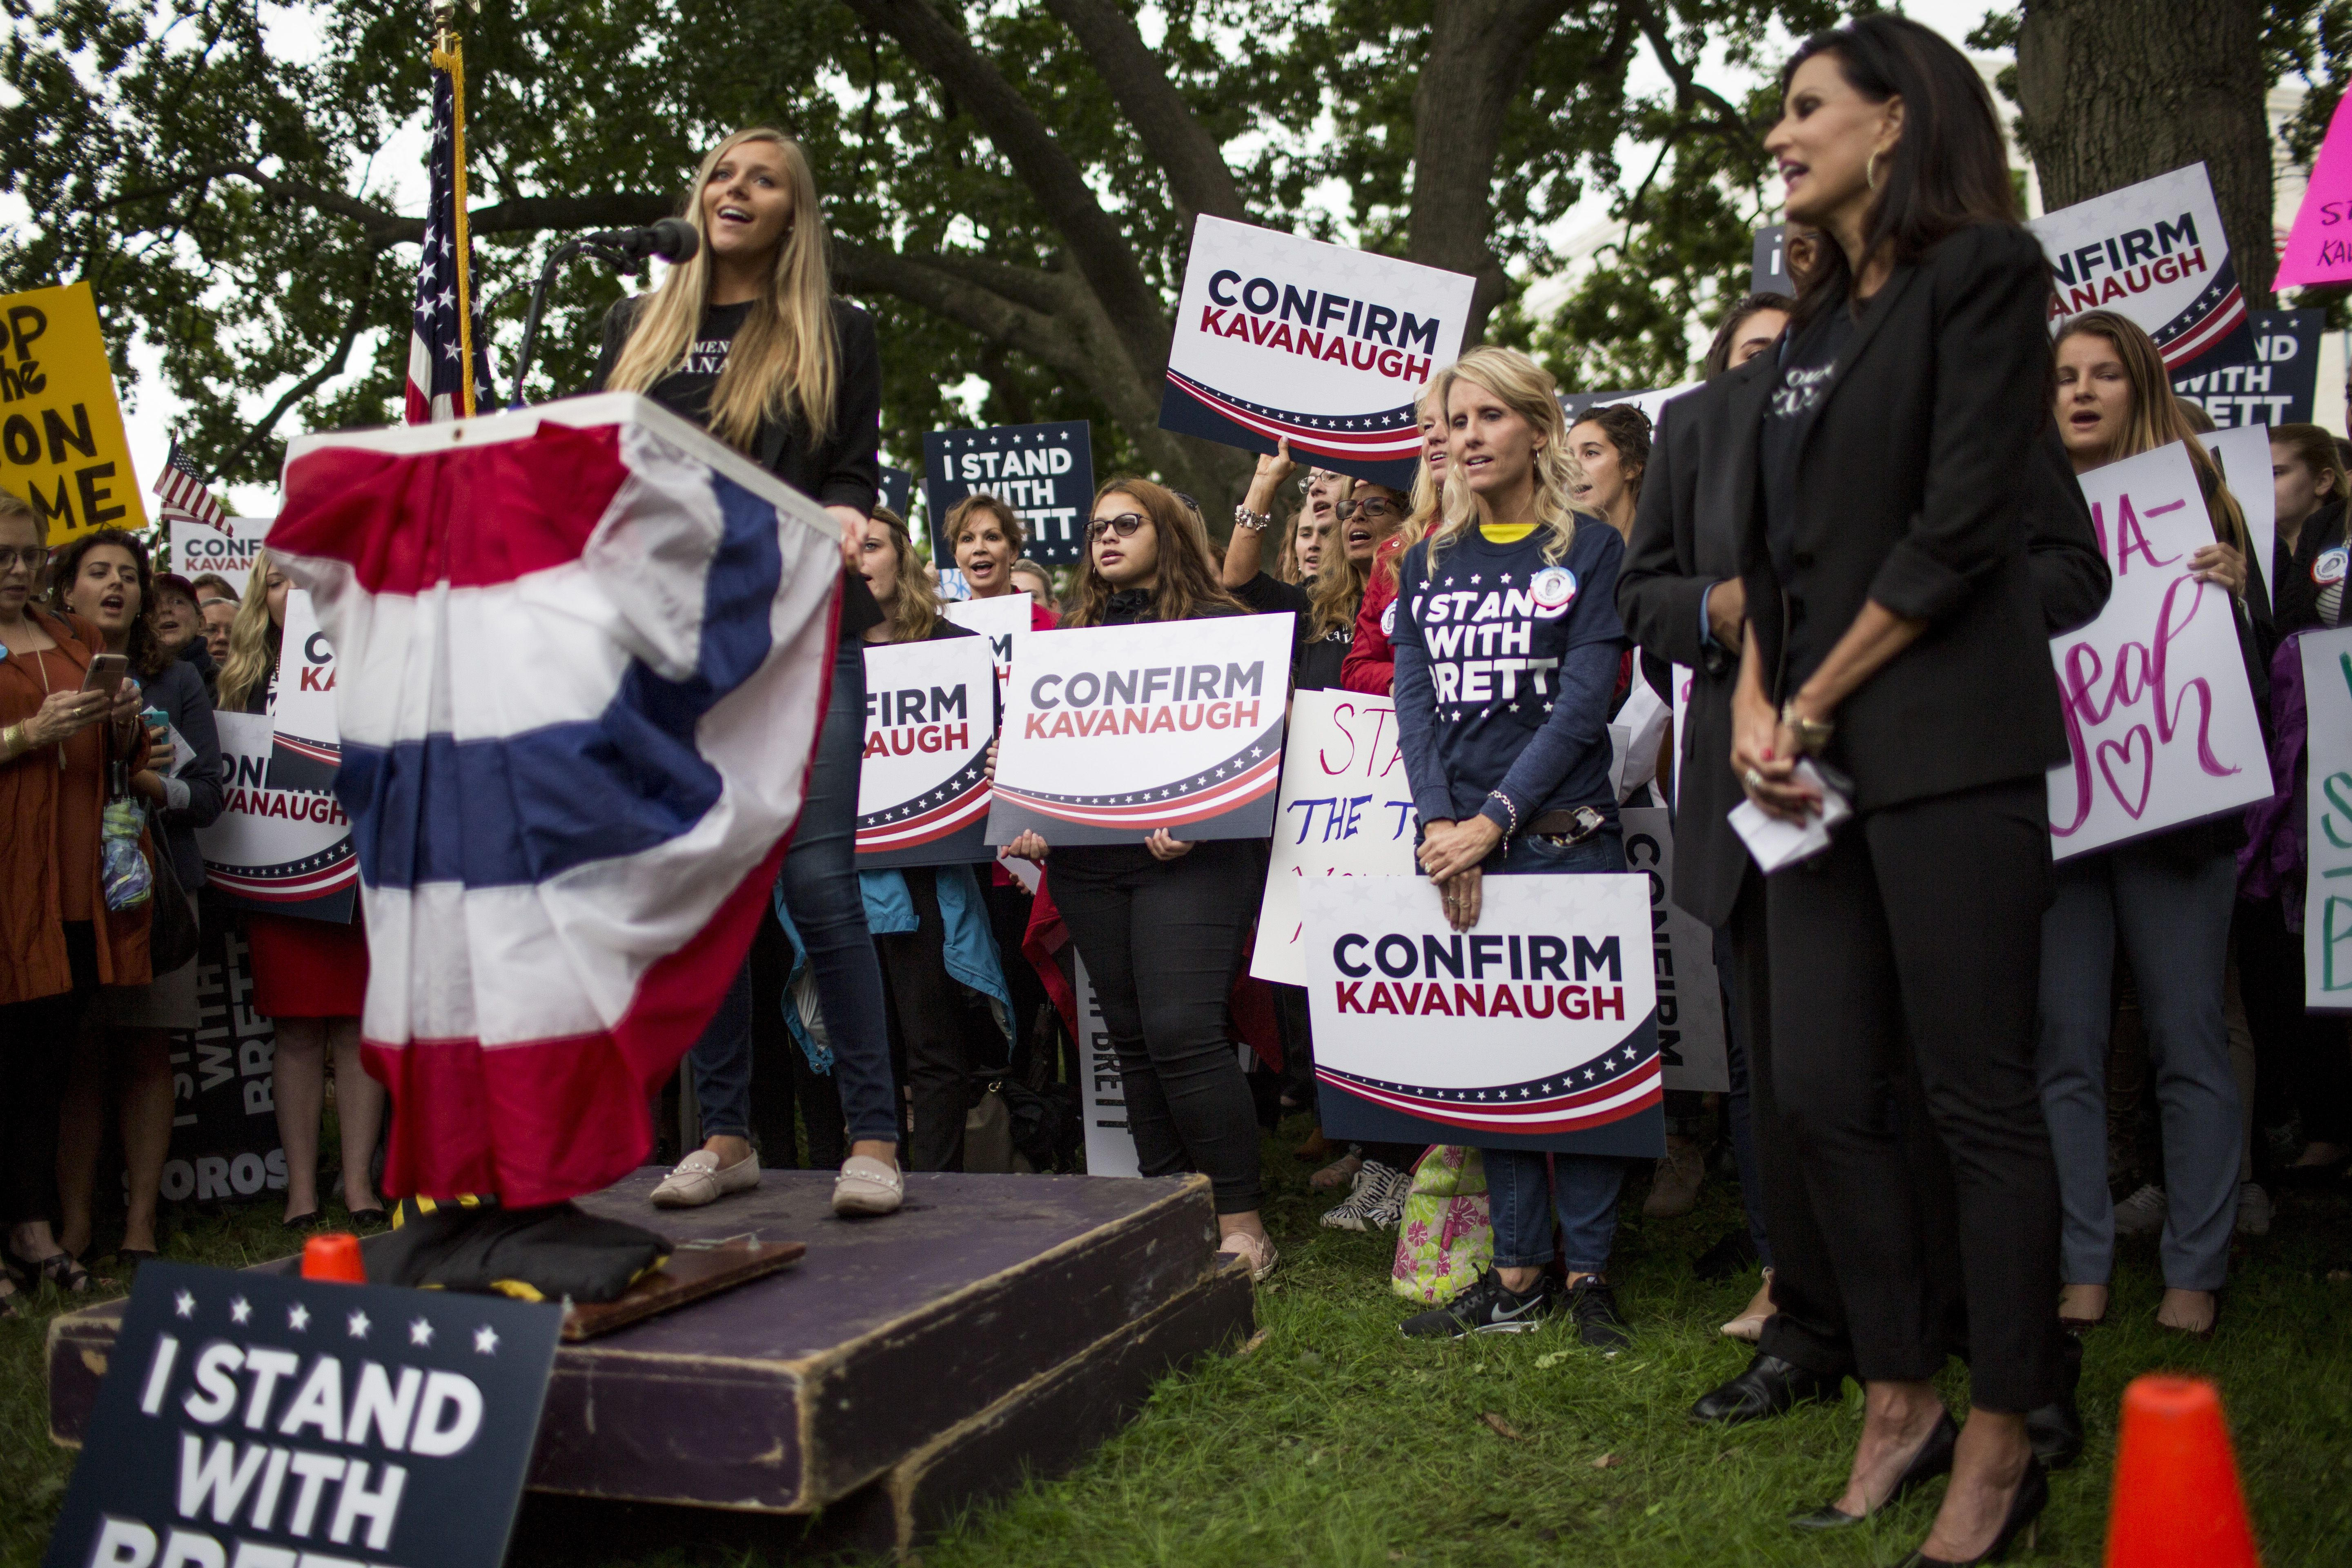 Demonstrators during a rally supporting Kavanaugh. Photo: Zach Gibson/Getty Images